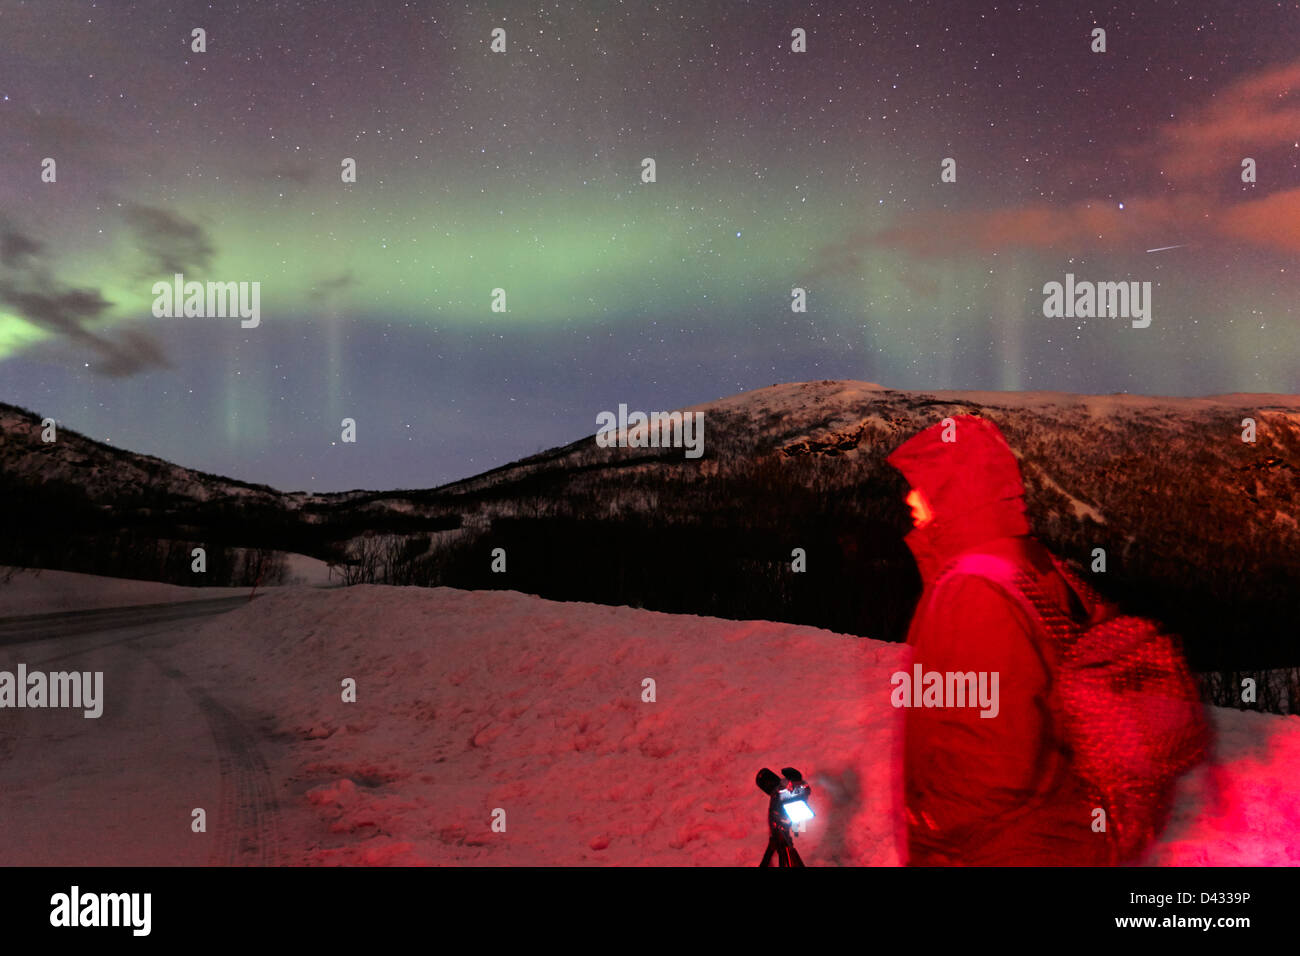 tourist photographer with tripod and camera set up to photograph swirling northern lights aurora borealis near tromso - Stock Image